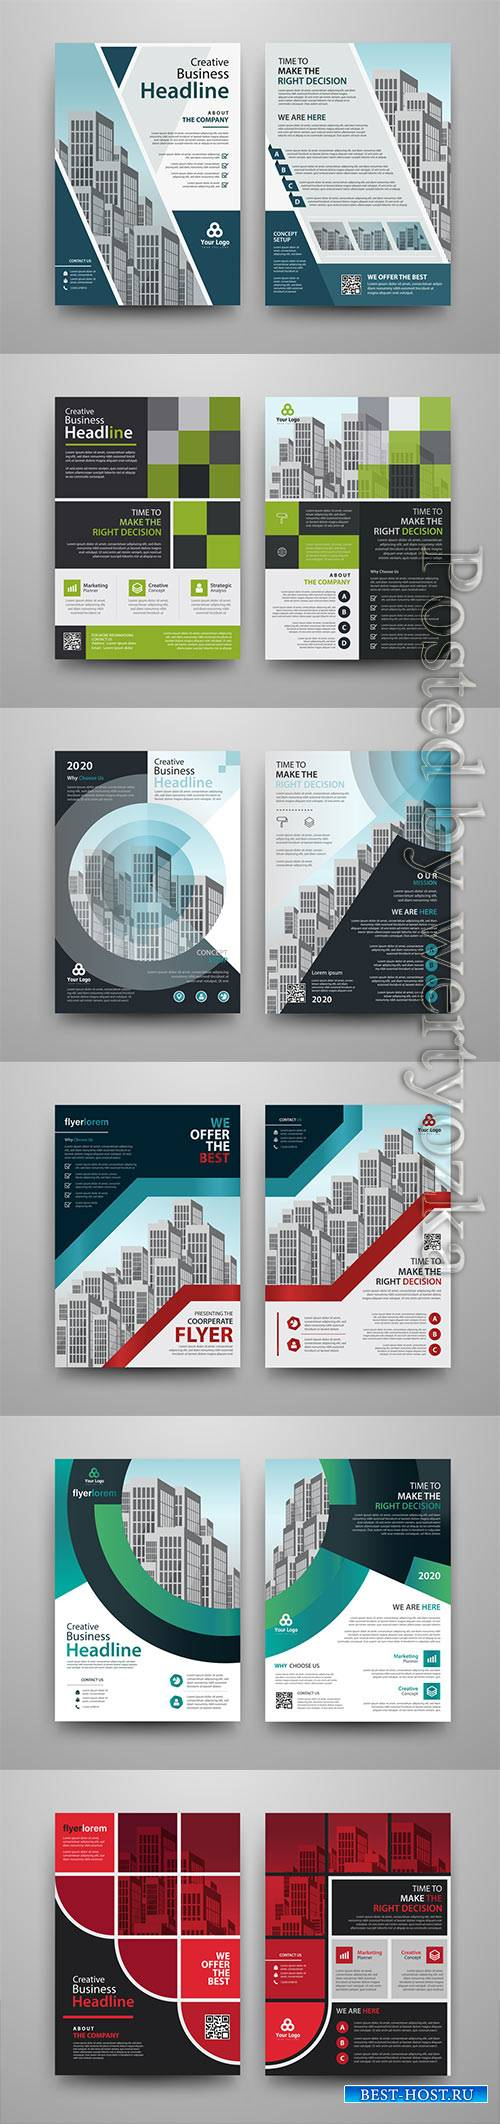 Business vector template for brochure, annual report, magazine # 18